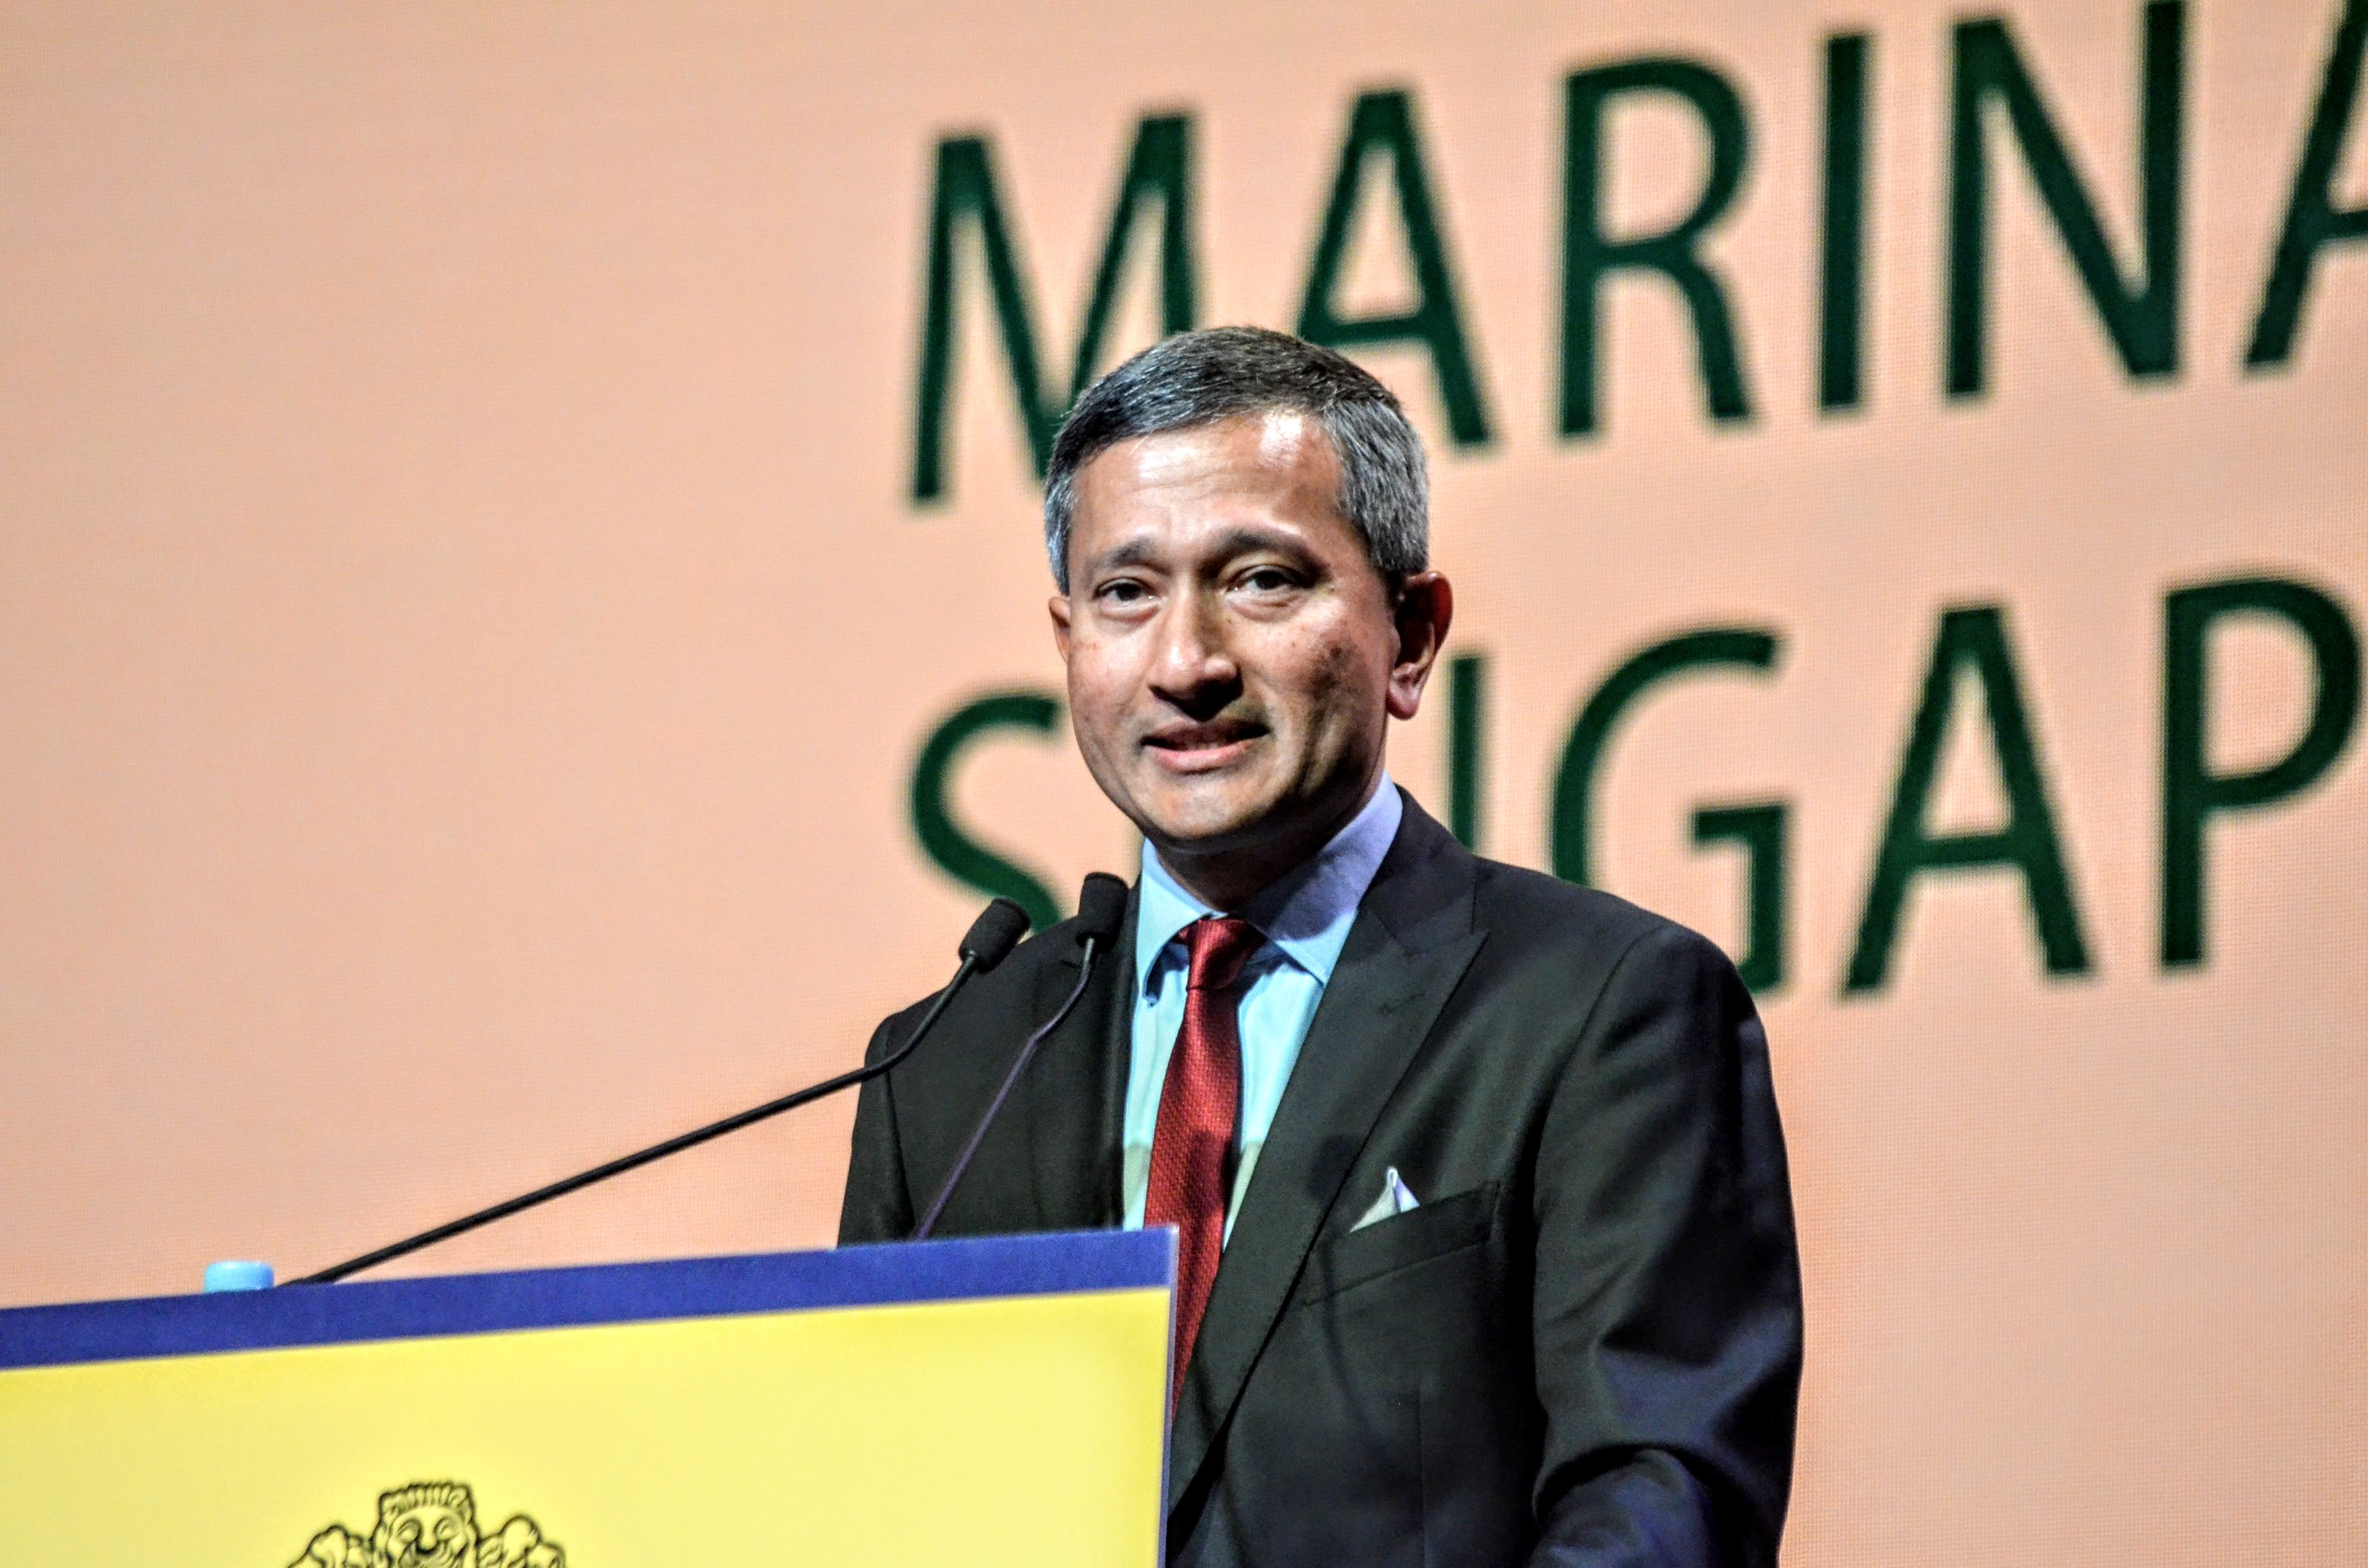 Dr Vivian Balakrishnan, Minister for Foreign Affairs, Singapore speaking at the ASEAN India Pravasi Bharatiya Divas in Singapore at the Marina Bay Sands Convention centre.